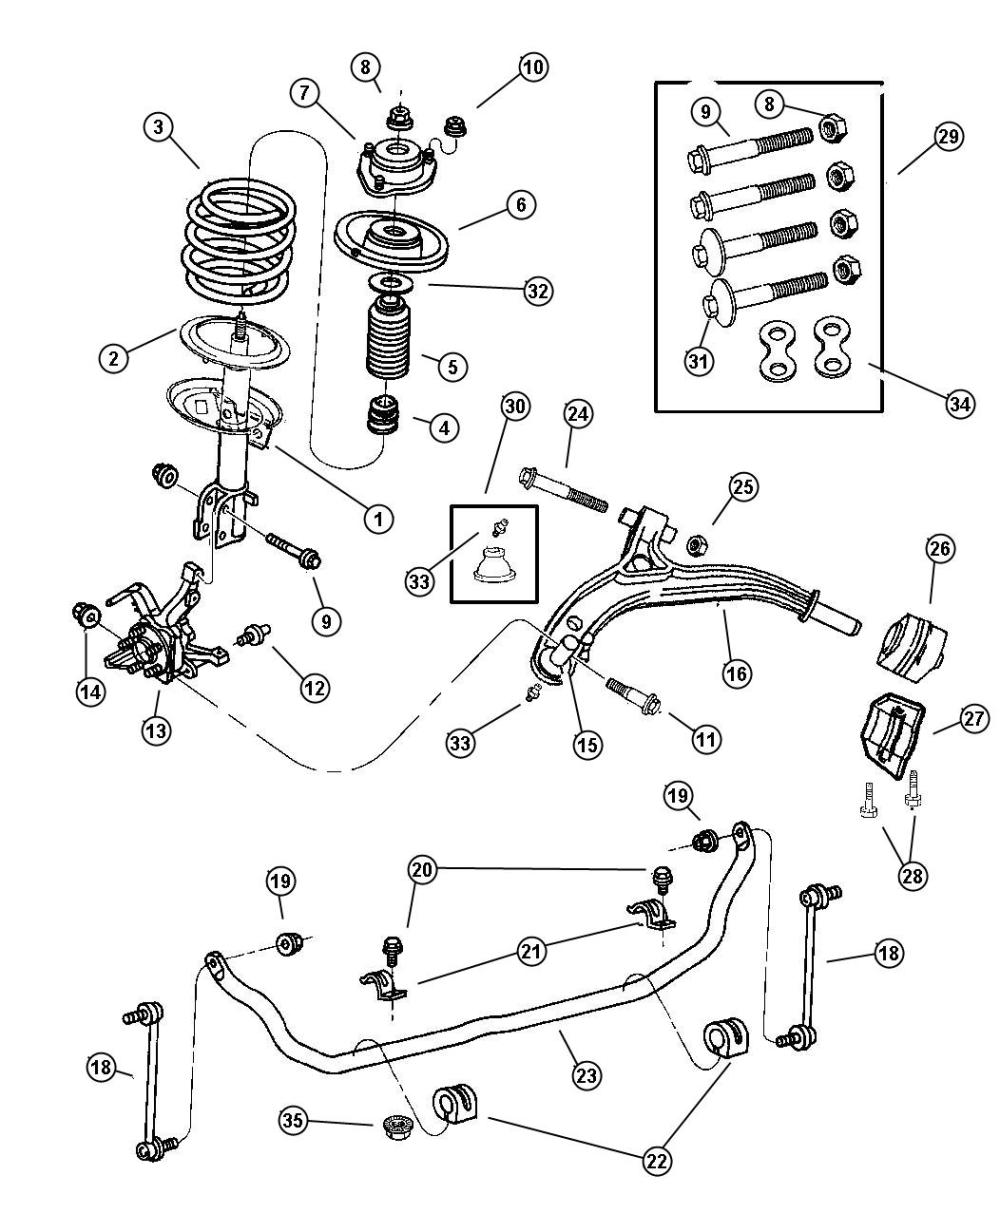 medium resolution of 2003 dodge caravan parts diagram 9 9 spikeballclubkoeln de u2022